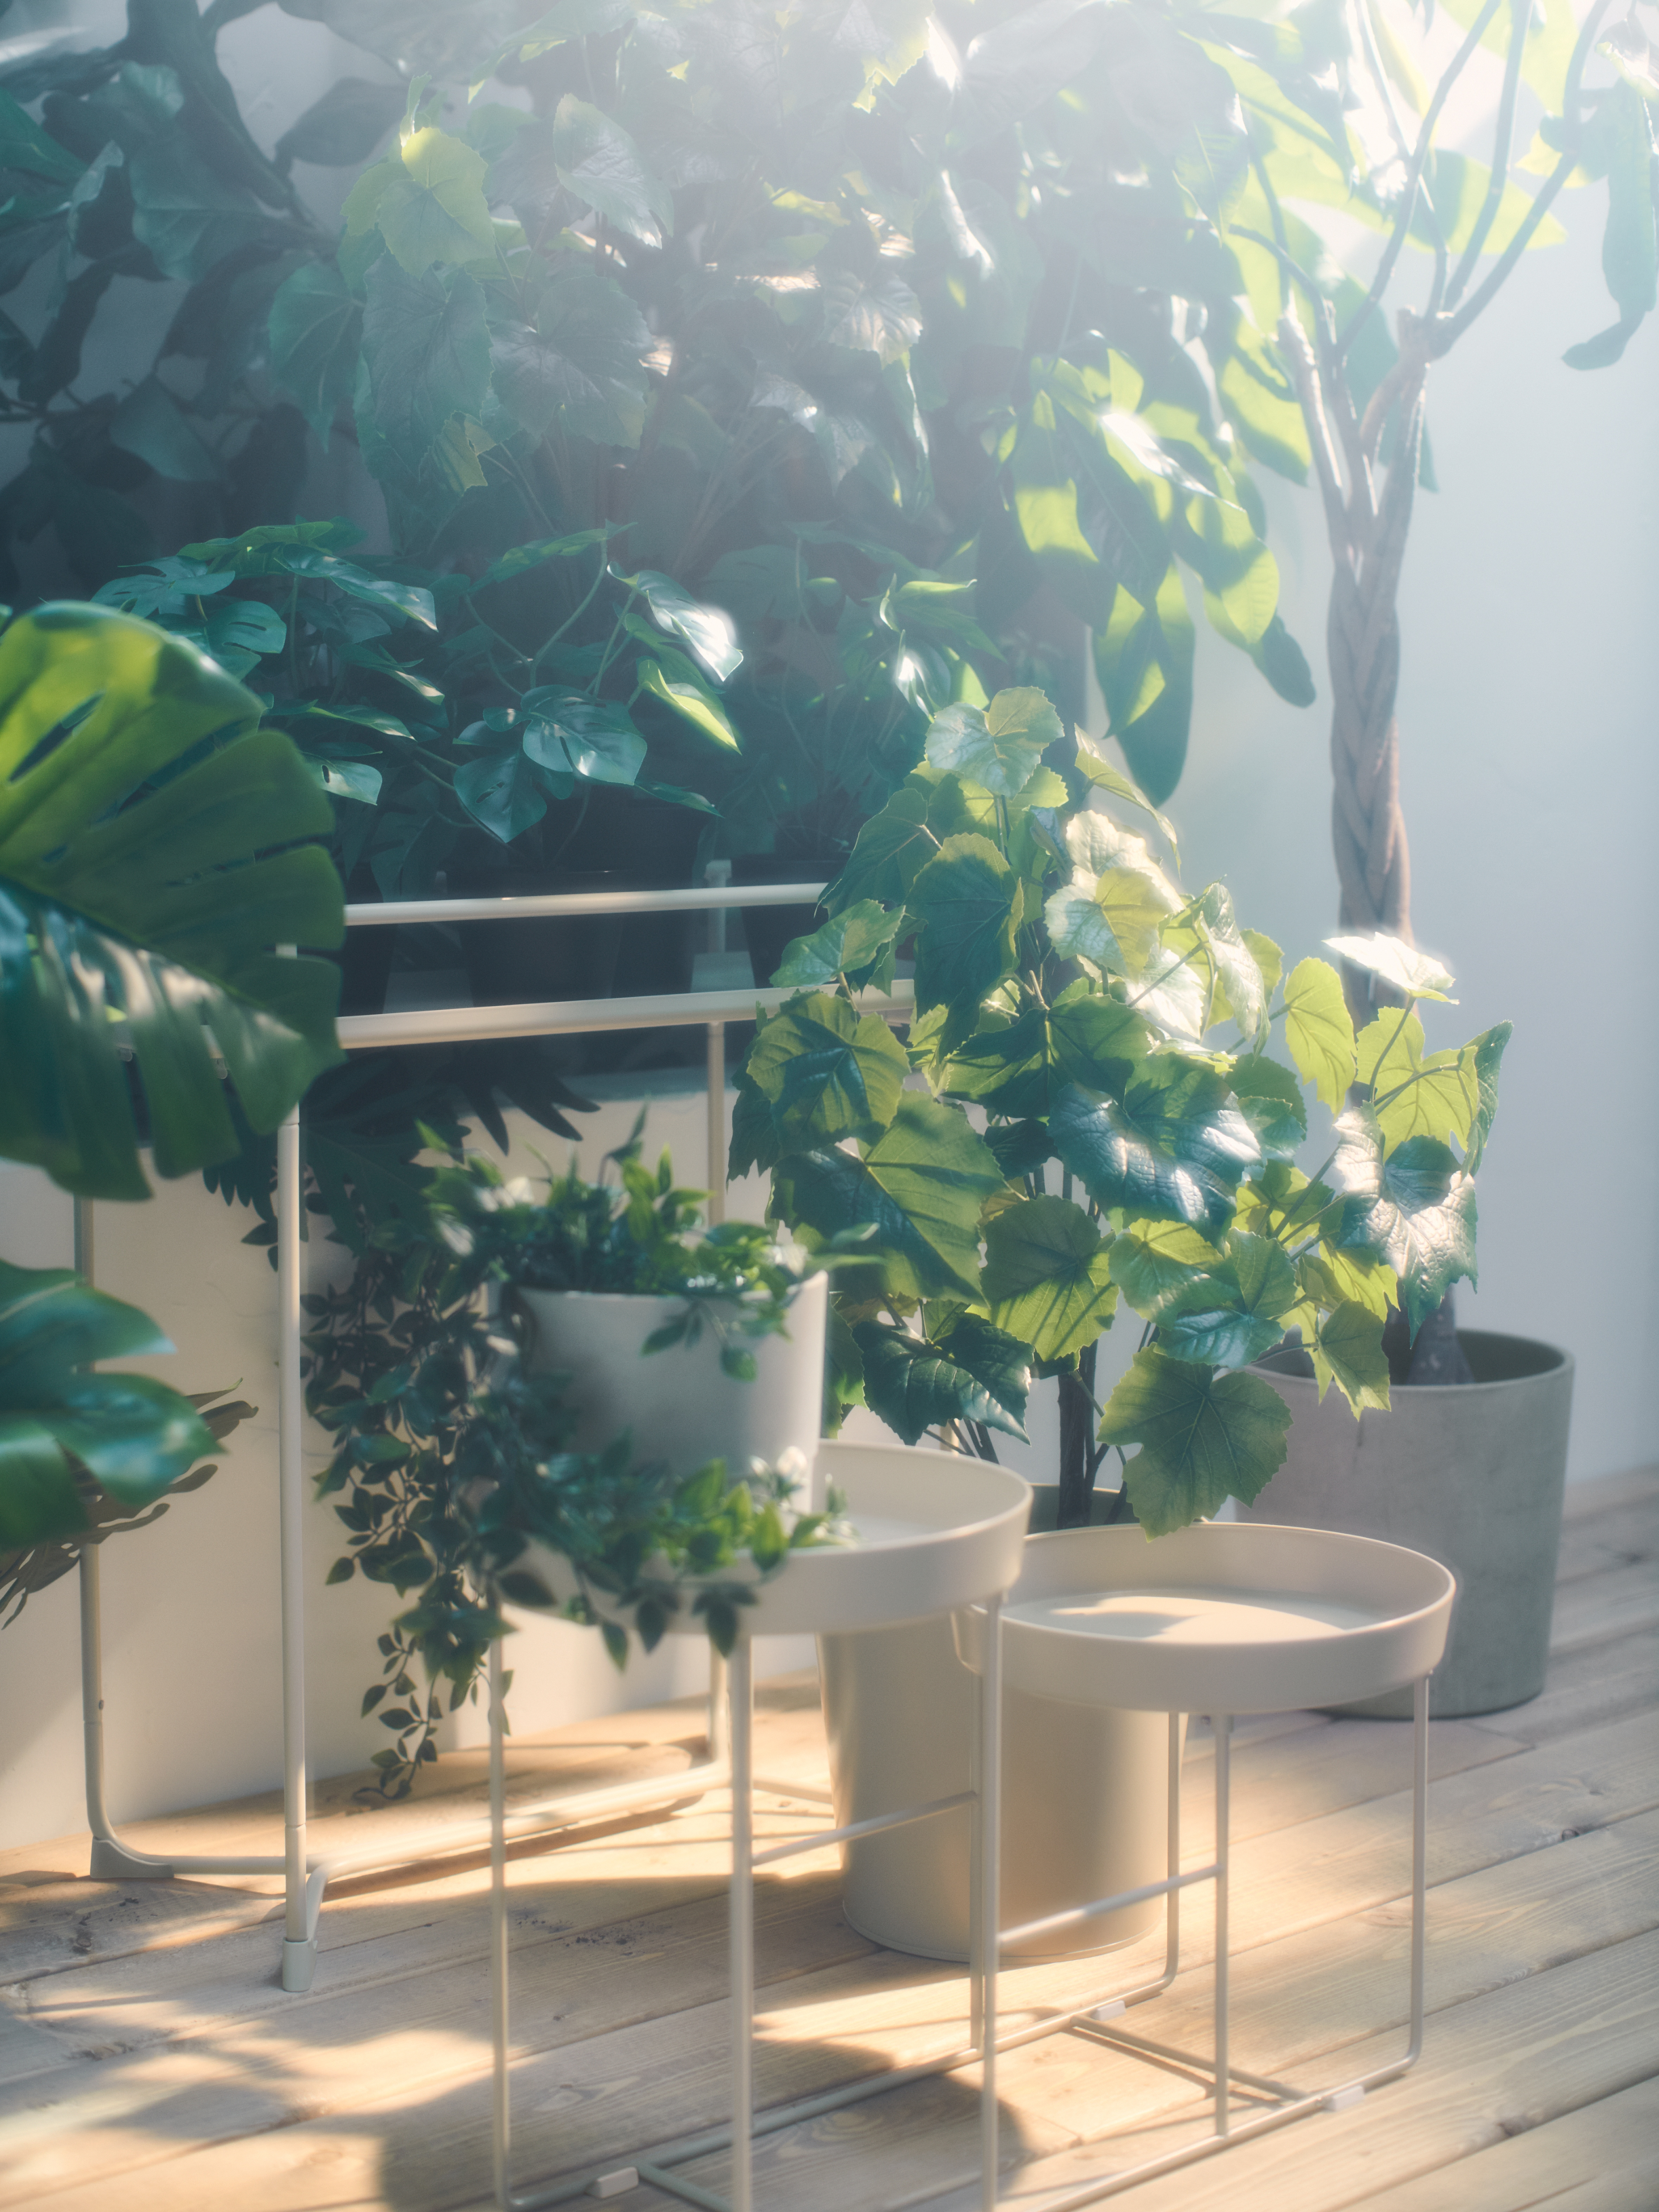 Lots of artificial plants, including a few on a VITLÖK plant stand, create an outdoor garden on a deck.